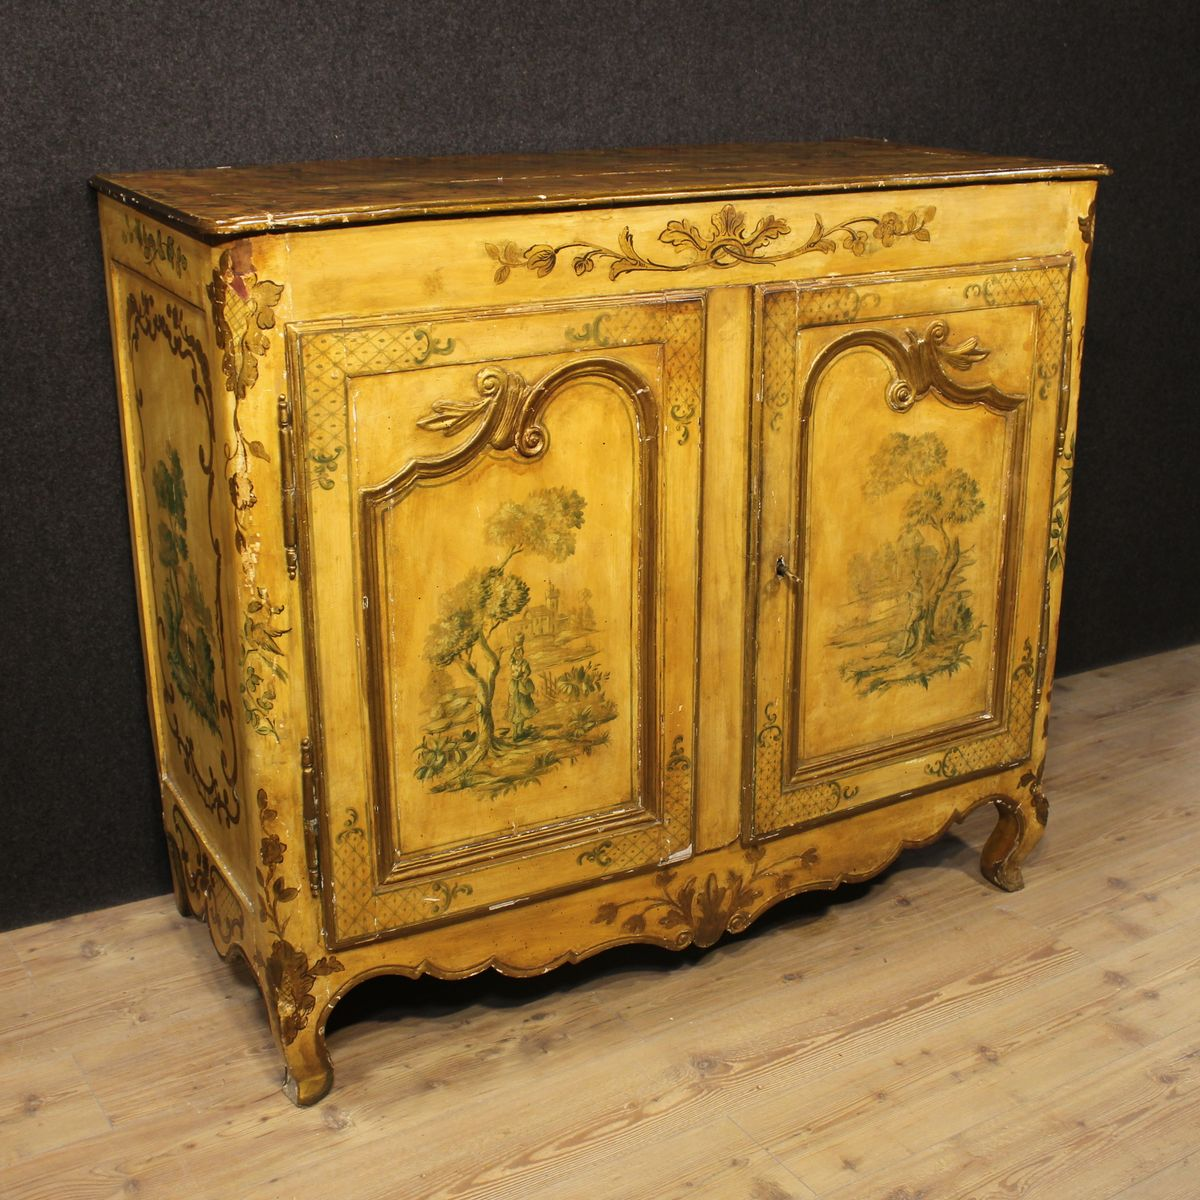 Antique medicine cabinet nz sideboard cabinet antique for Best brand of paint for kitchen cabinets with art nouveau wall paper